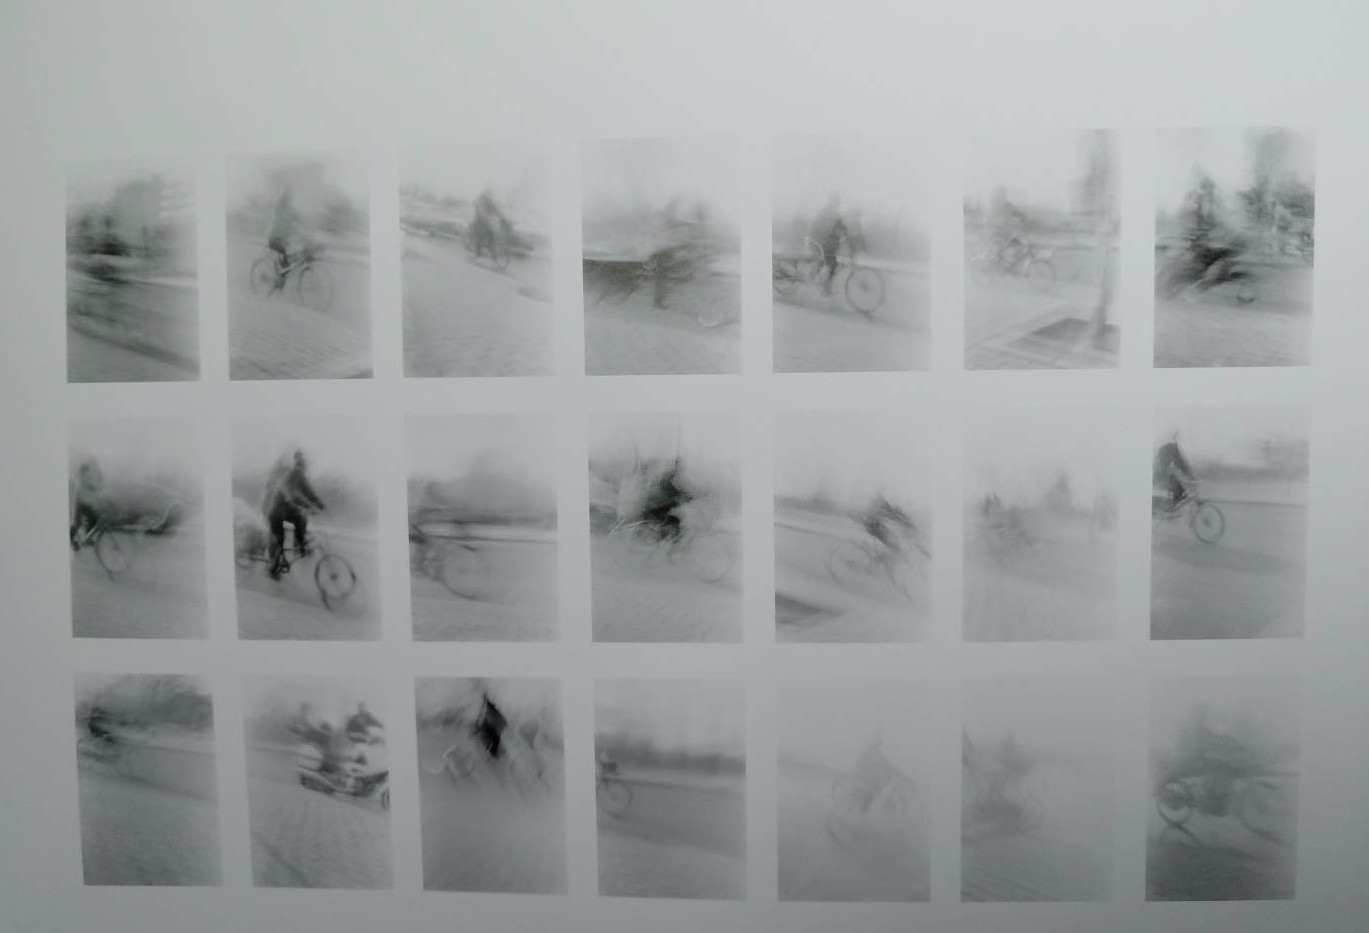 Photoserie Li Gang in the greyscale, collection of National Gallery Museum Canberra, Australia